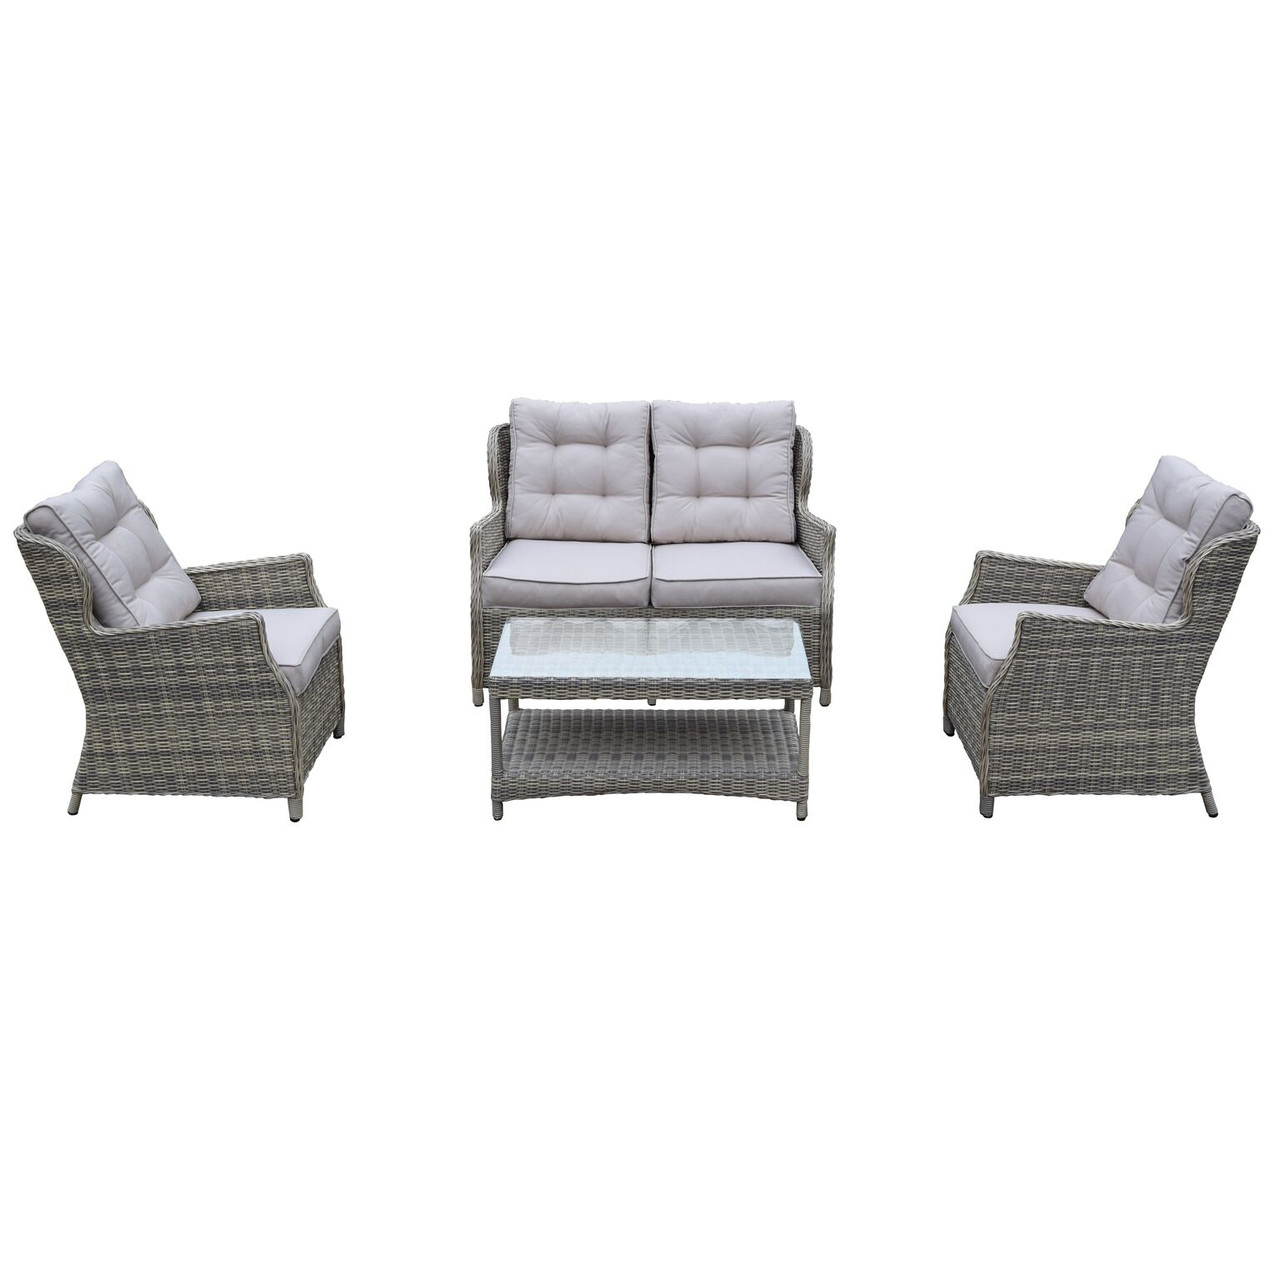 4 Piece Brown Borneo All Weather Resin Wicker Chat Set W Gray Cushions Christmas Central